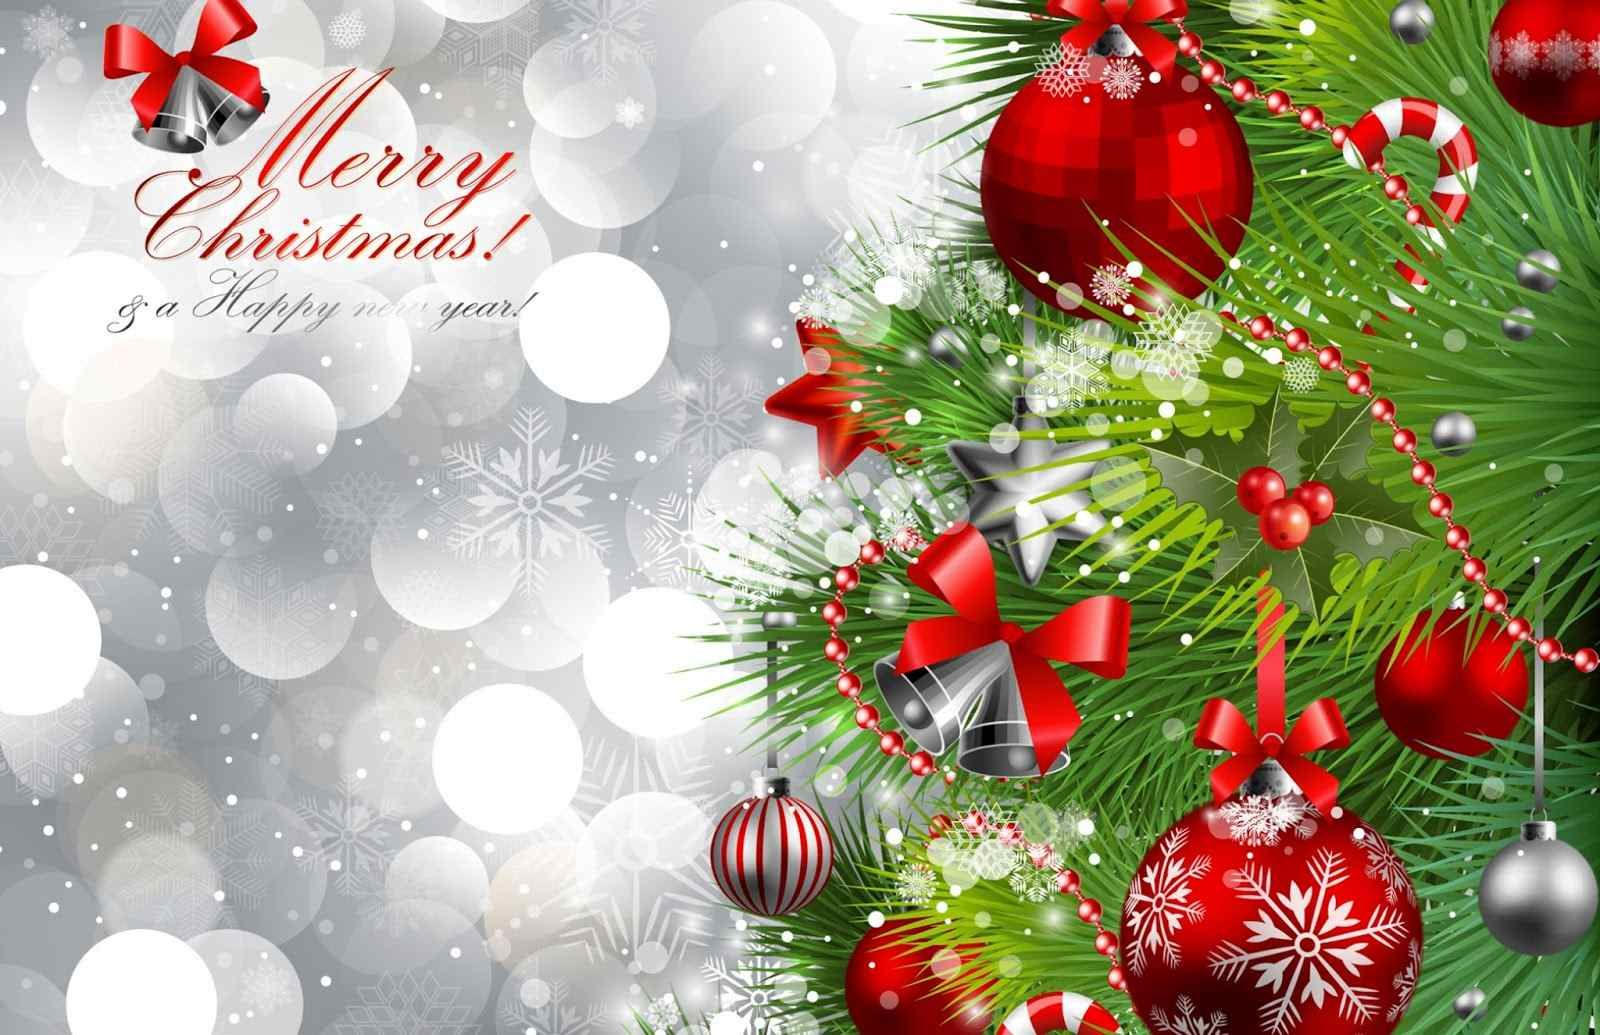 Christmas card greetings employees christmas images pinterest christmas card greetings employees kristyandbryce Image collections